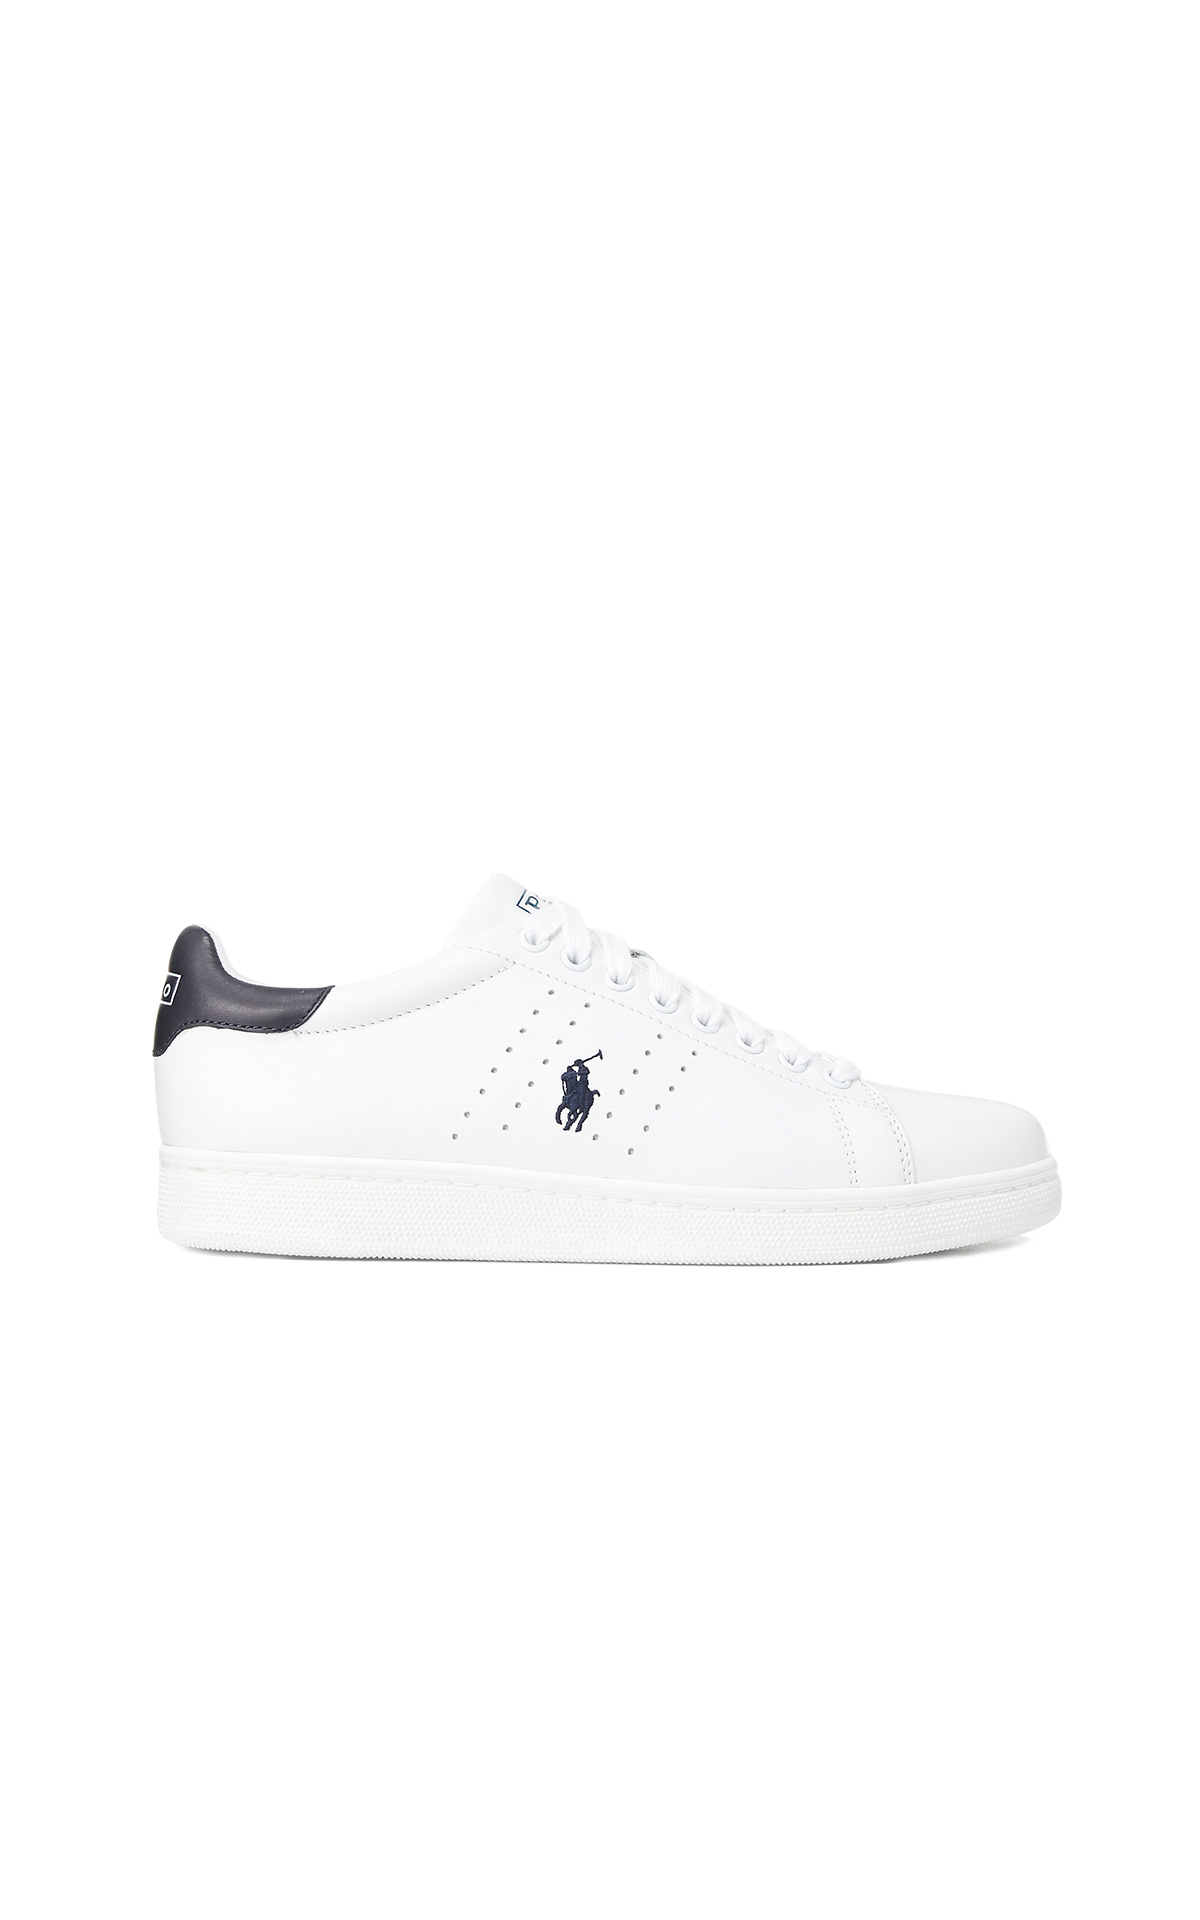 La Vallée Village Polo Ralph Lauren Men and Women white sneakers with PRL logo